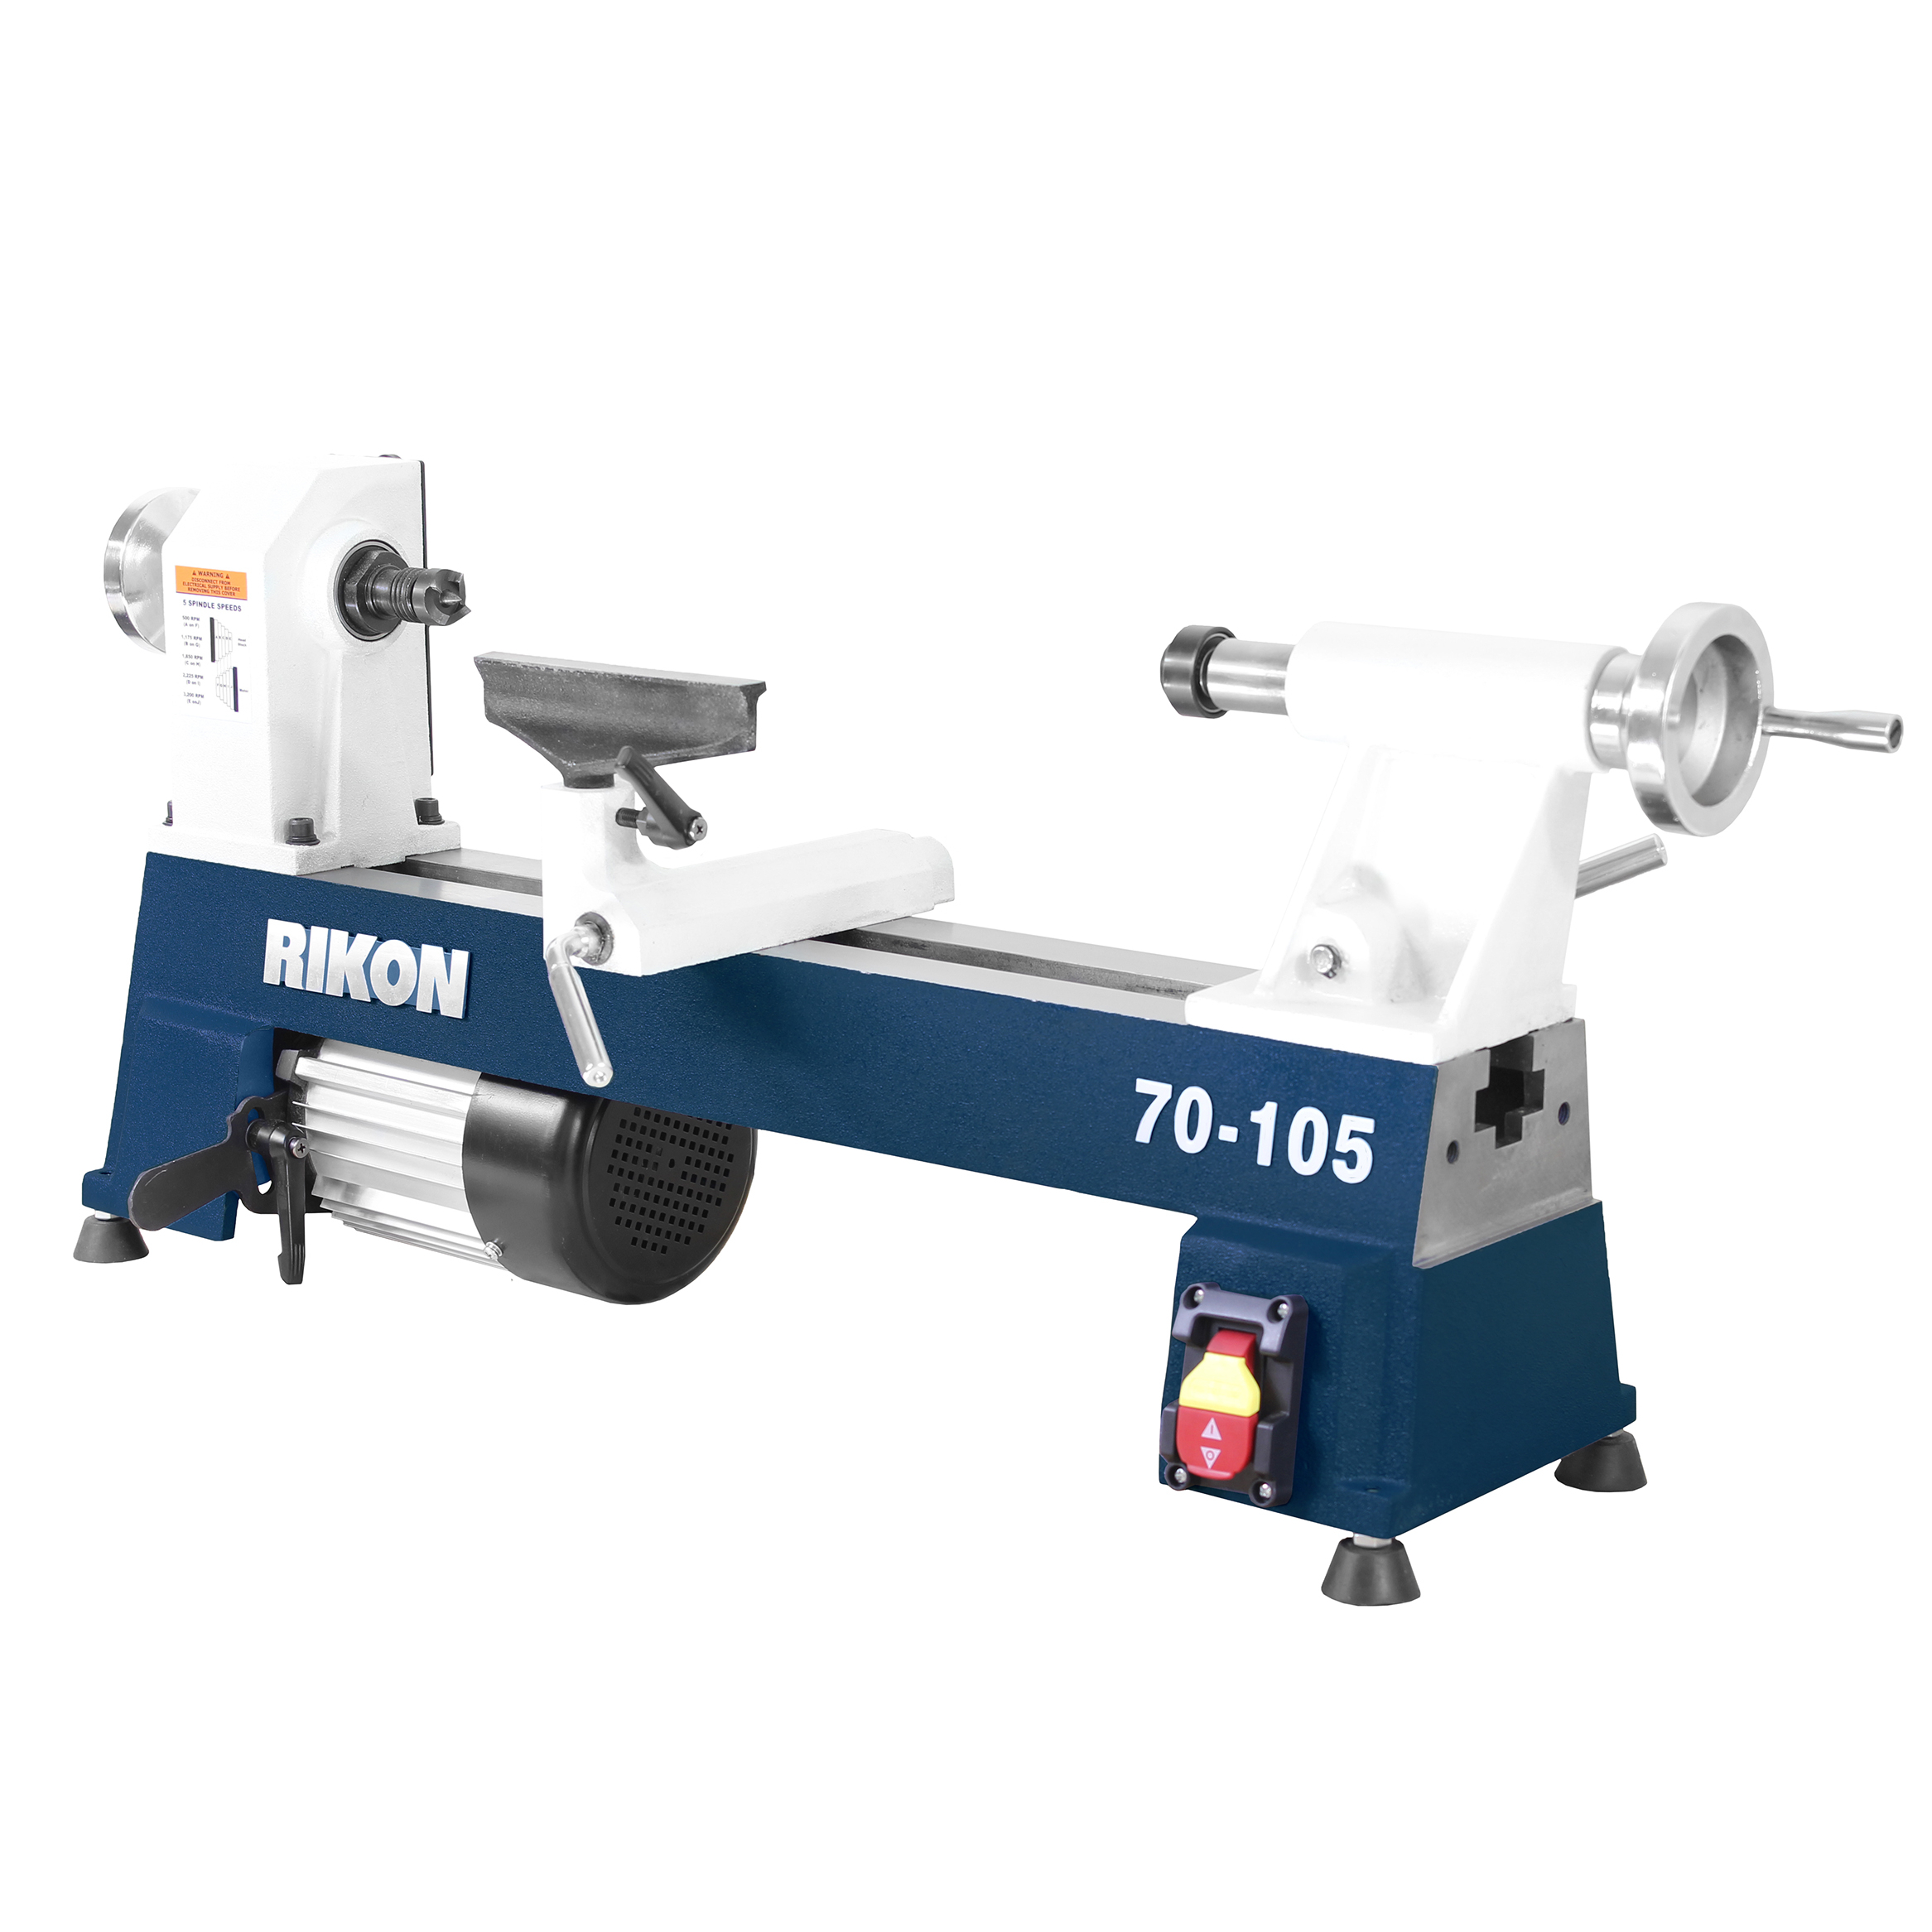 "Rikon 70-105 10"" x 18"" Mini Lathe by Rikon Power Tools"